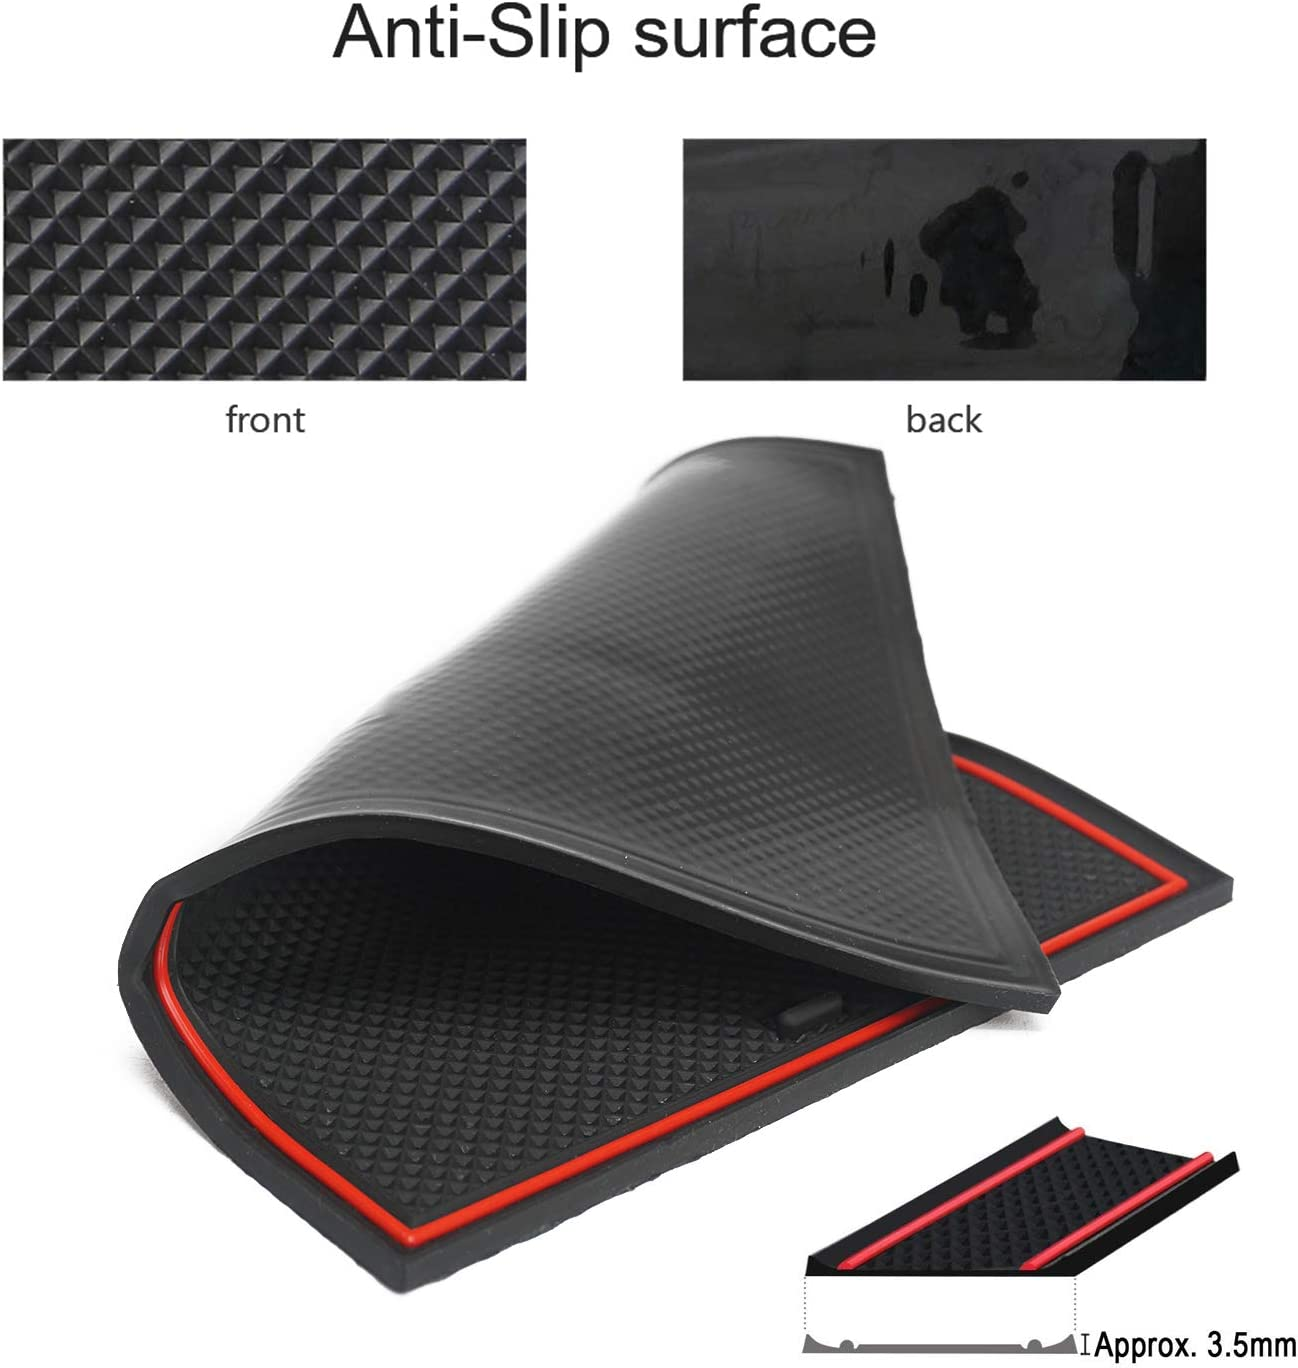 Black Auovo Anti Dust Mats for Mercedes-Benz C-Class C300 Sedan Coupe 2015-2019 Custom Fit Door Compartment Liners Cup Holder Console Liners Interior Accessories 8pcs//Set